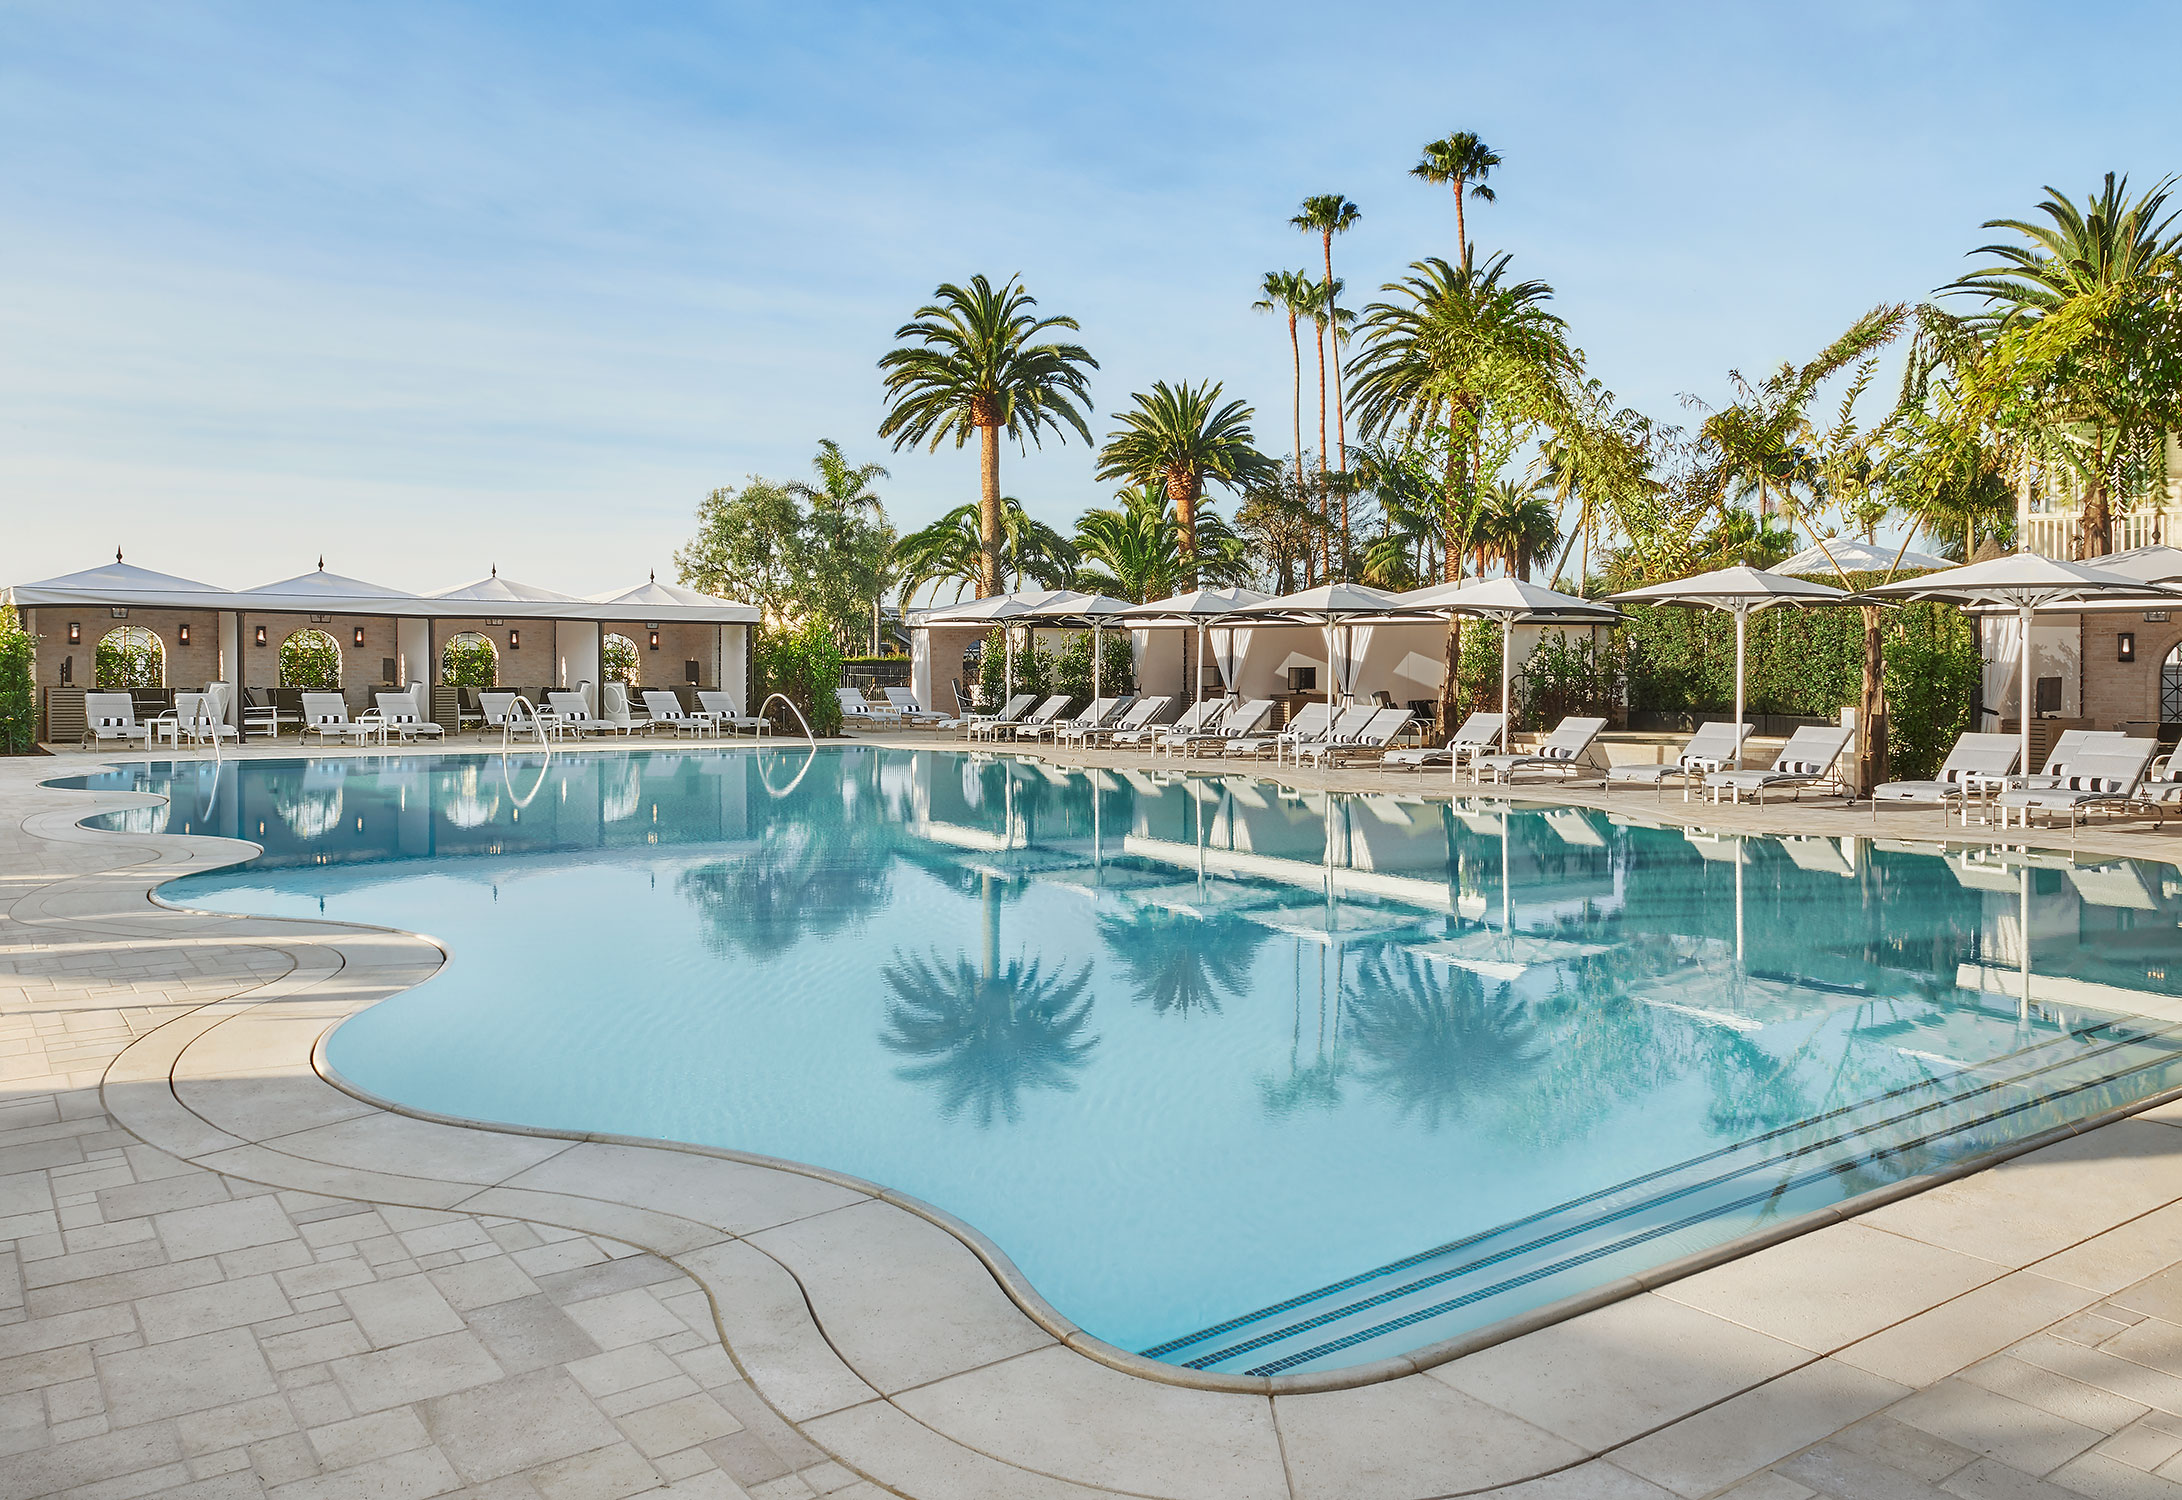 ROSEWOOD-CABANA-POOL-NO-RAILINGS-NO-SHADOWSWeb